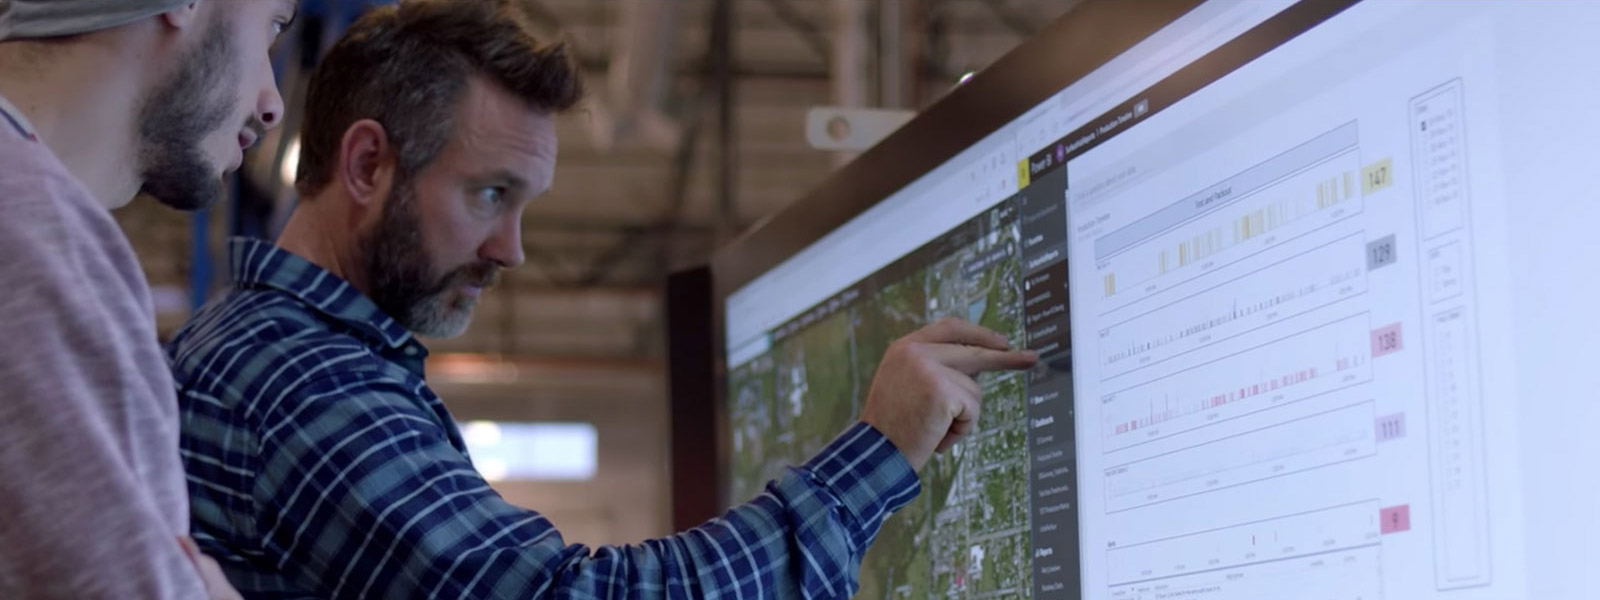 Two men using touch on a Surface Hub device.